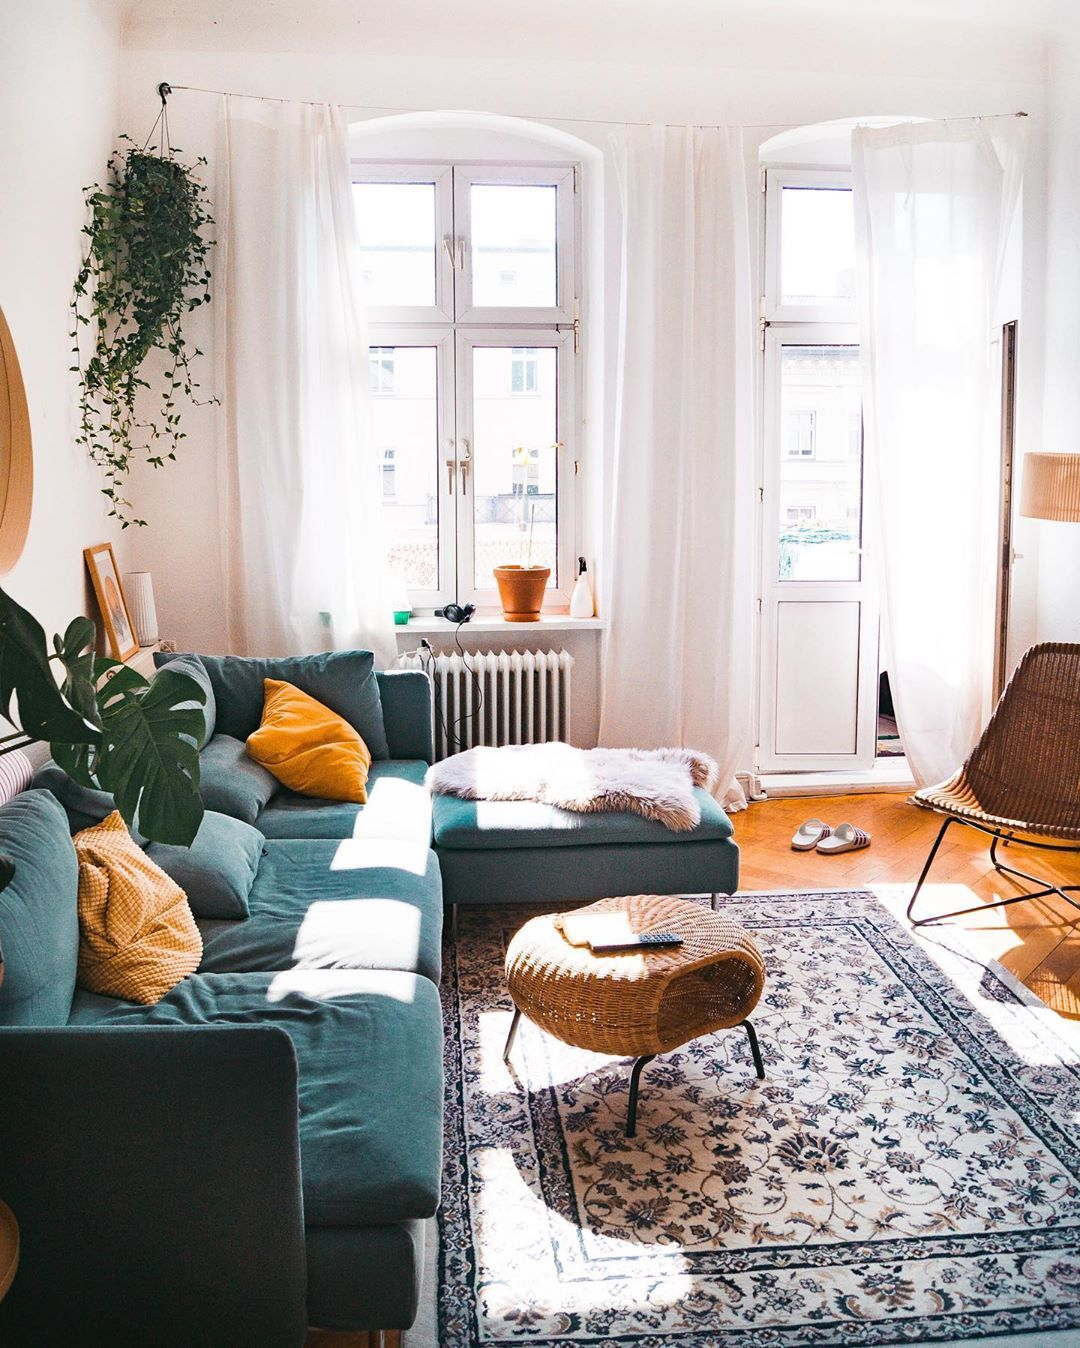 "Interior I 👩🏻 🧔🏻 😺 I Living on Instagram: ""[Werbung ..."